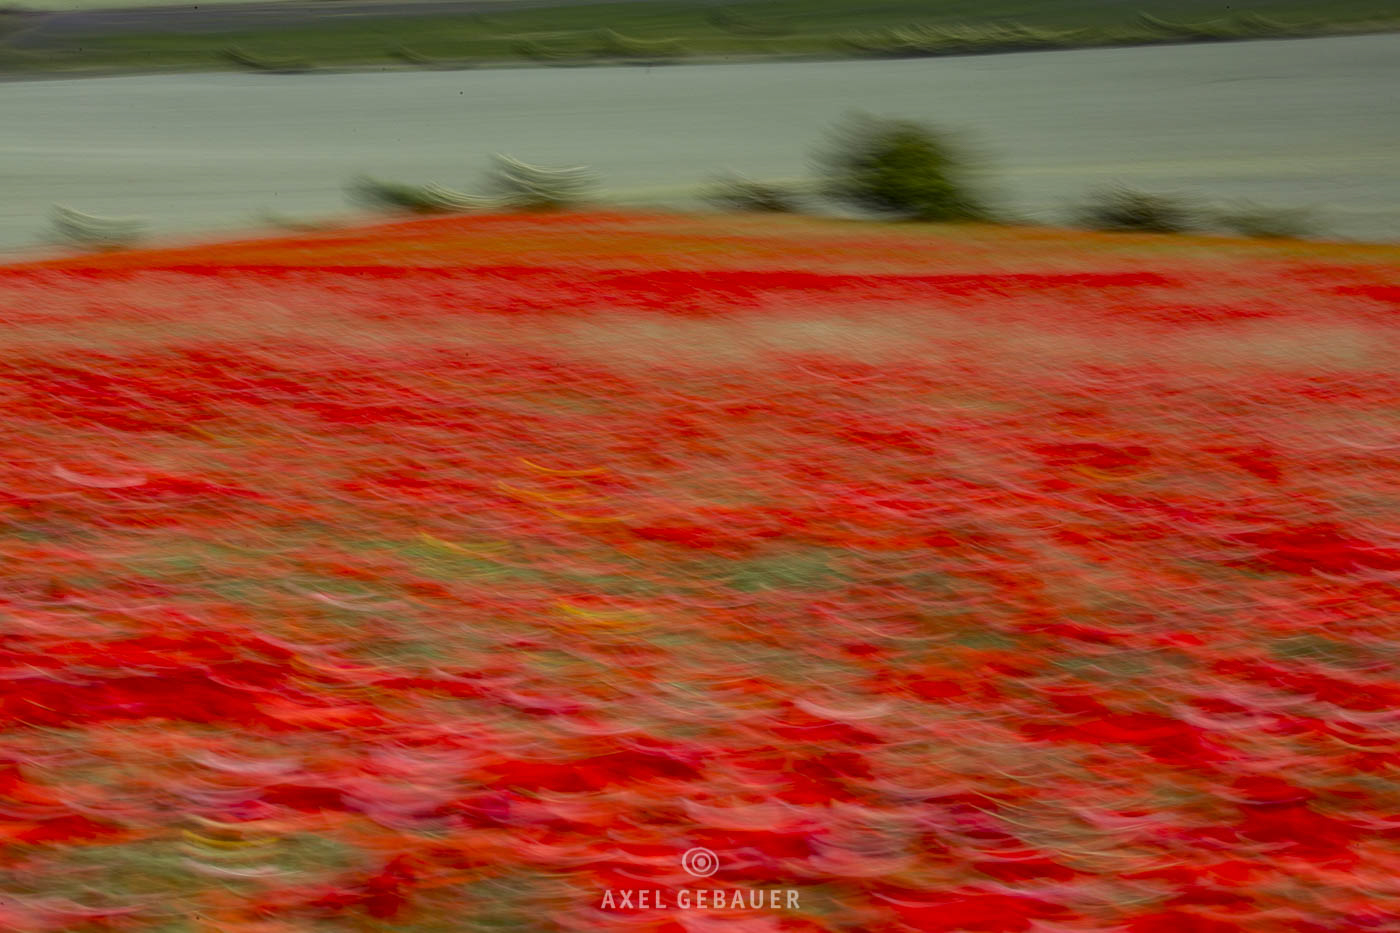 PoppyField, photographic painting due to camera movement